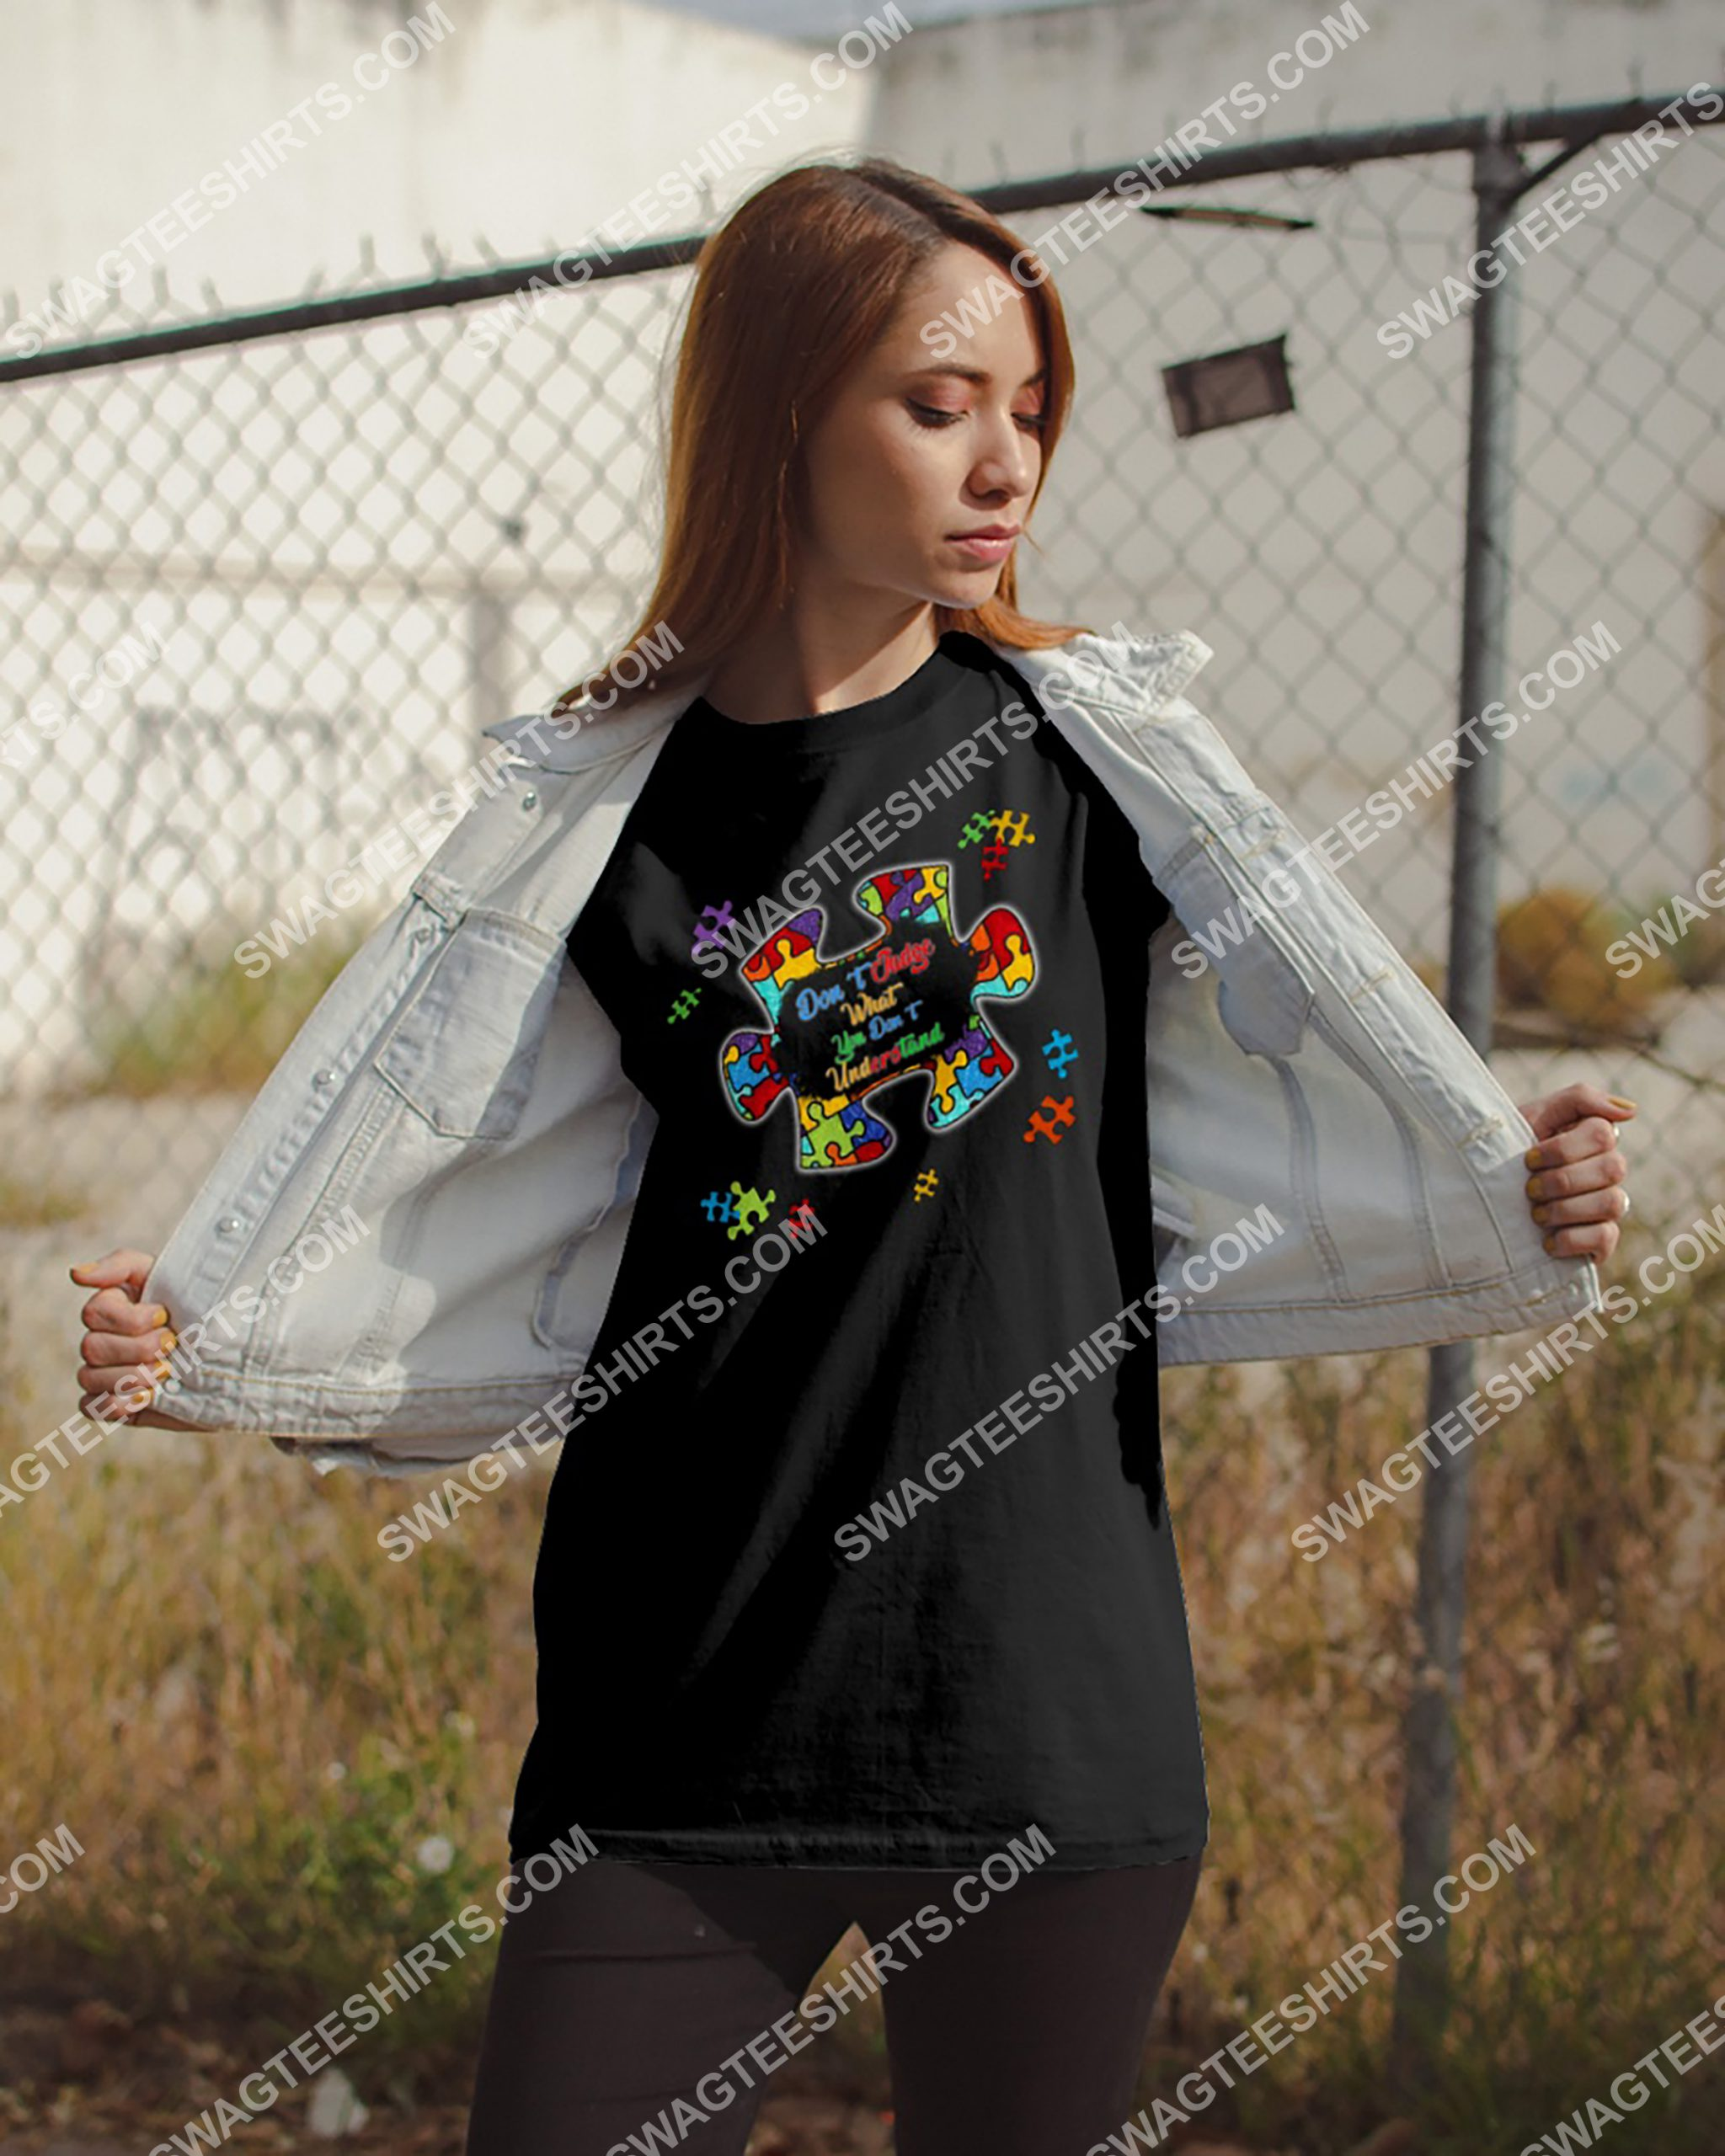 don't judge what you don't understand autism awareness shirt 2(1)